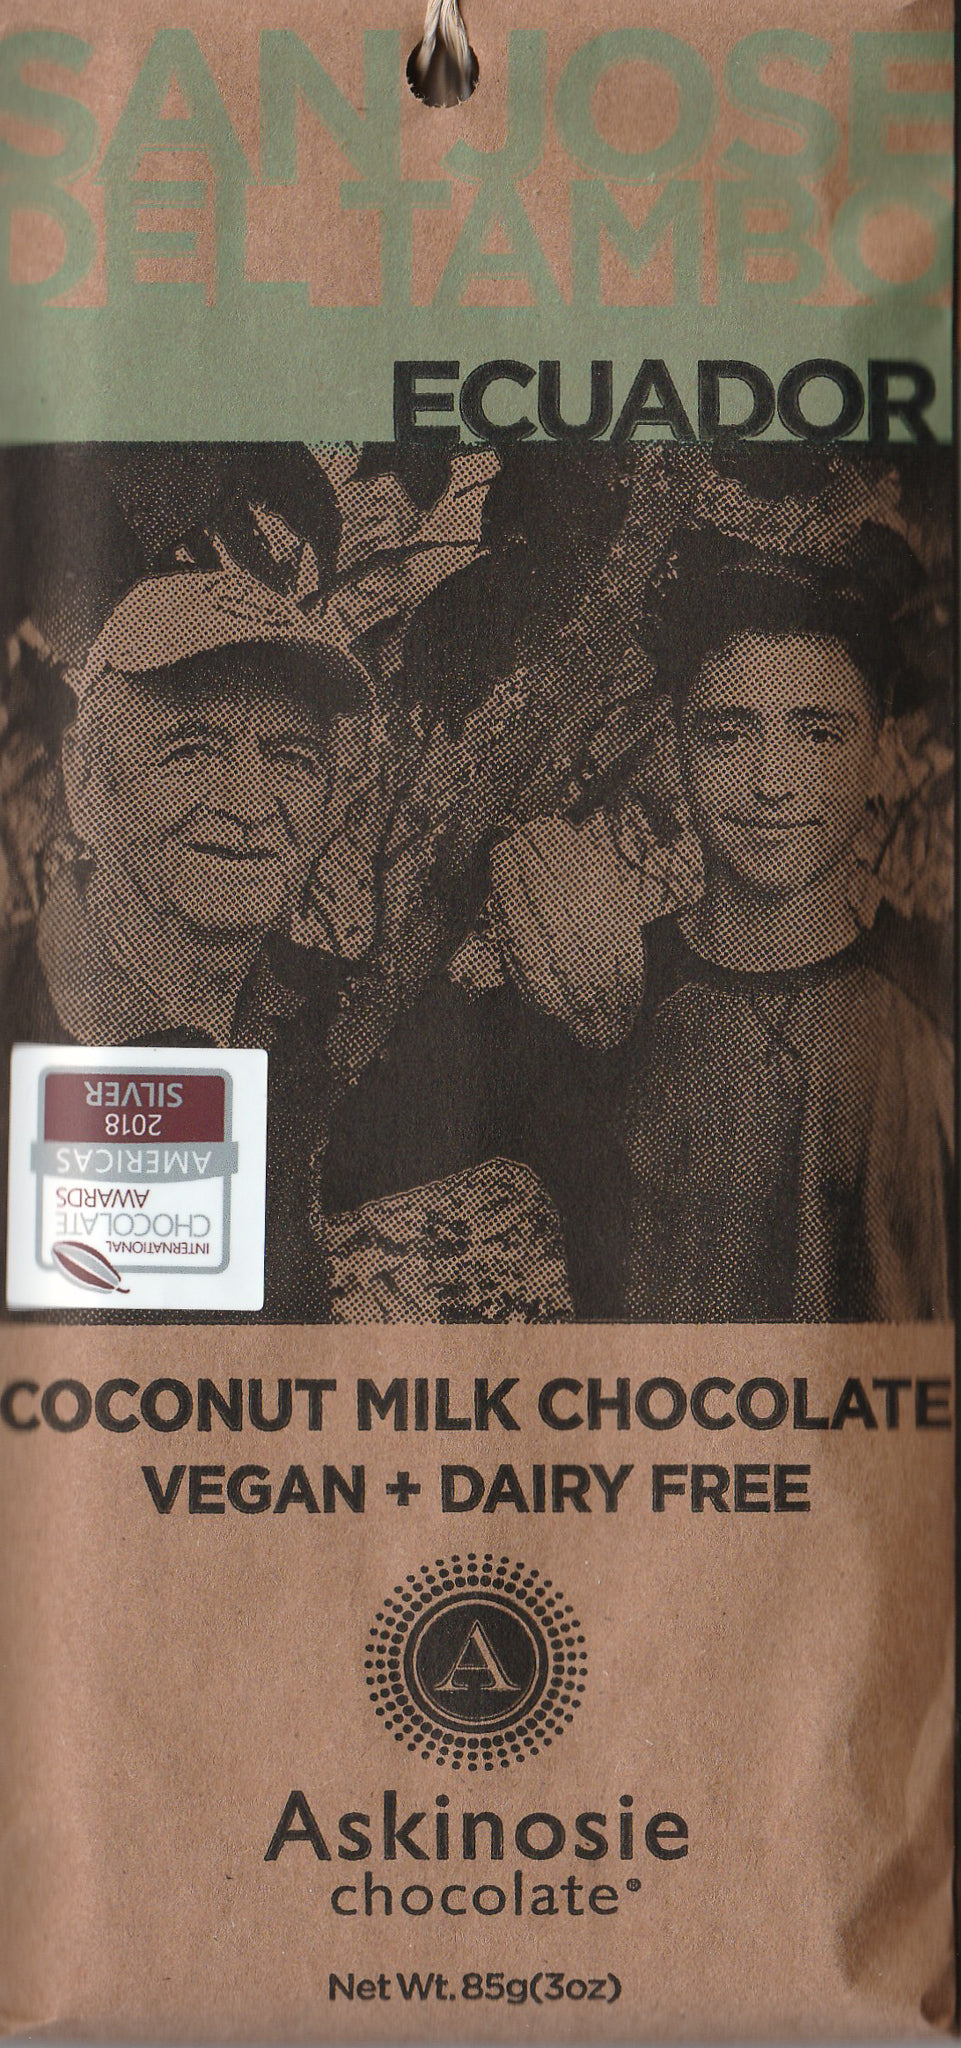 Askinosie Coconut Milk Chocolate Vegan + Dairy Free